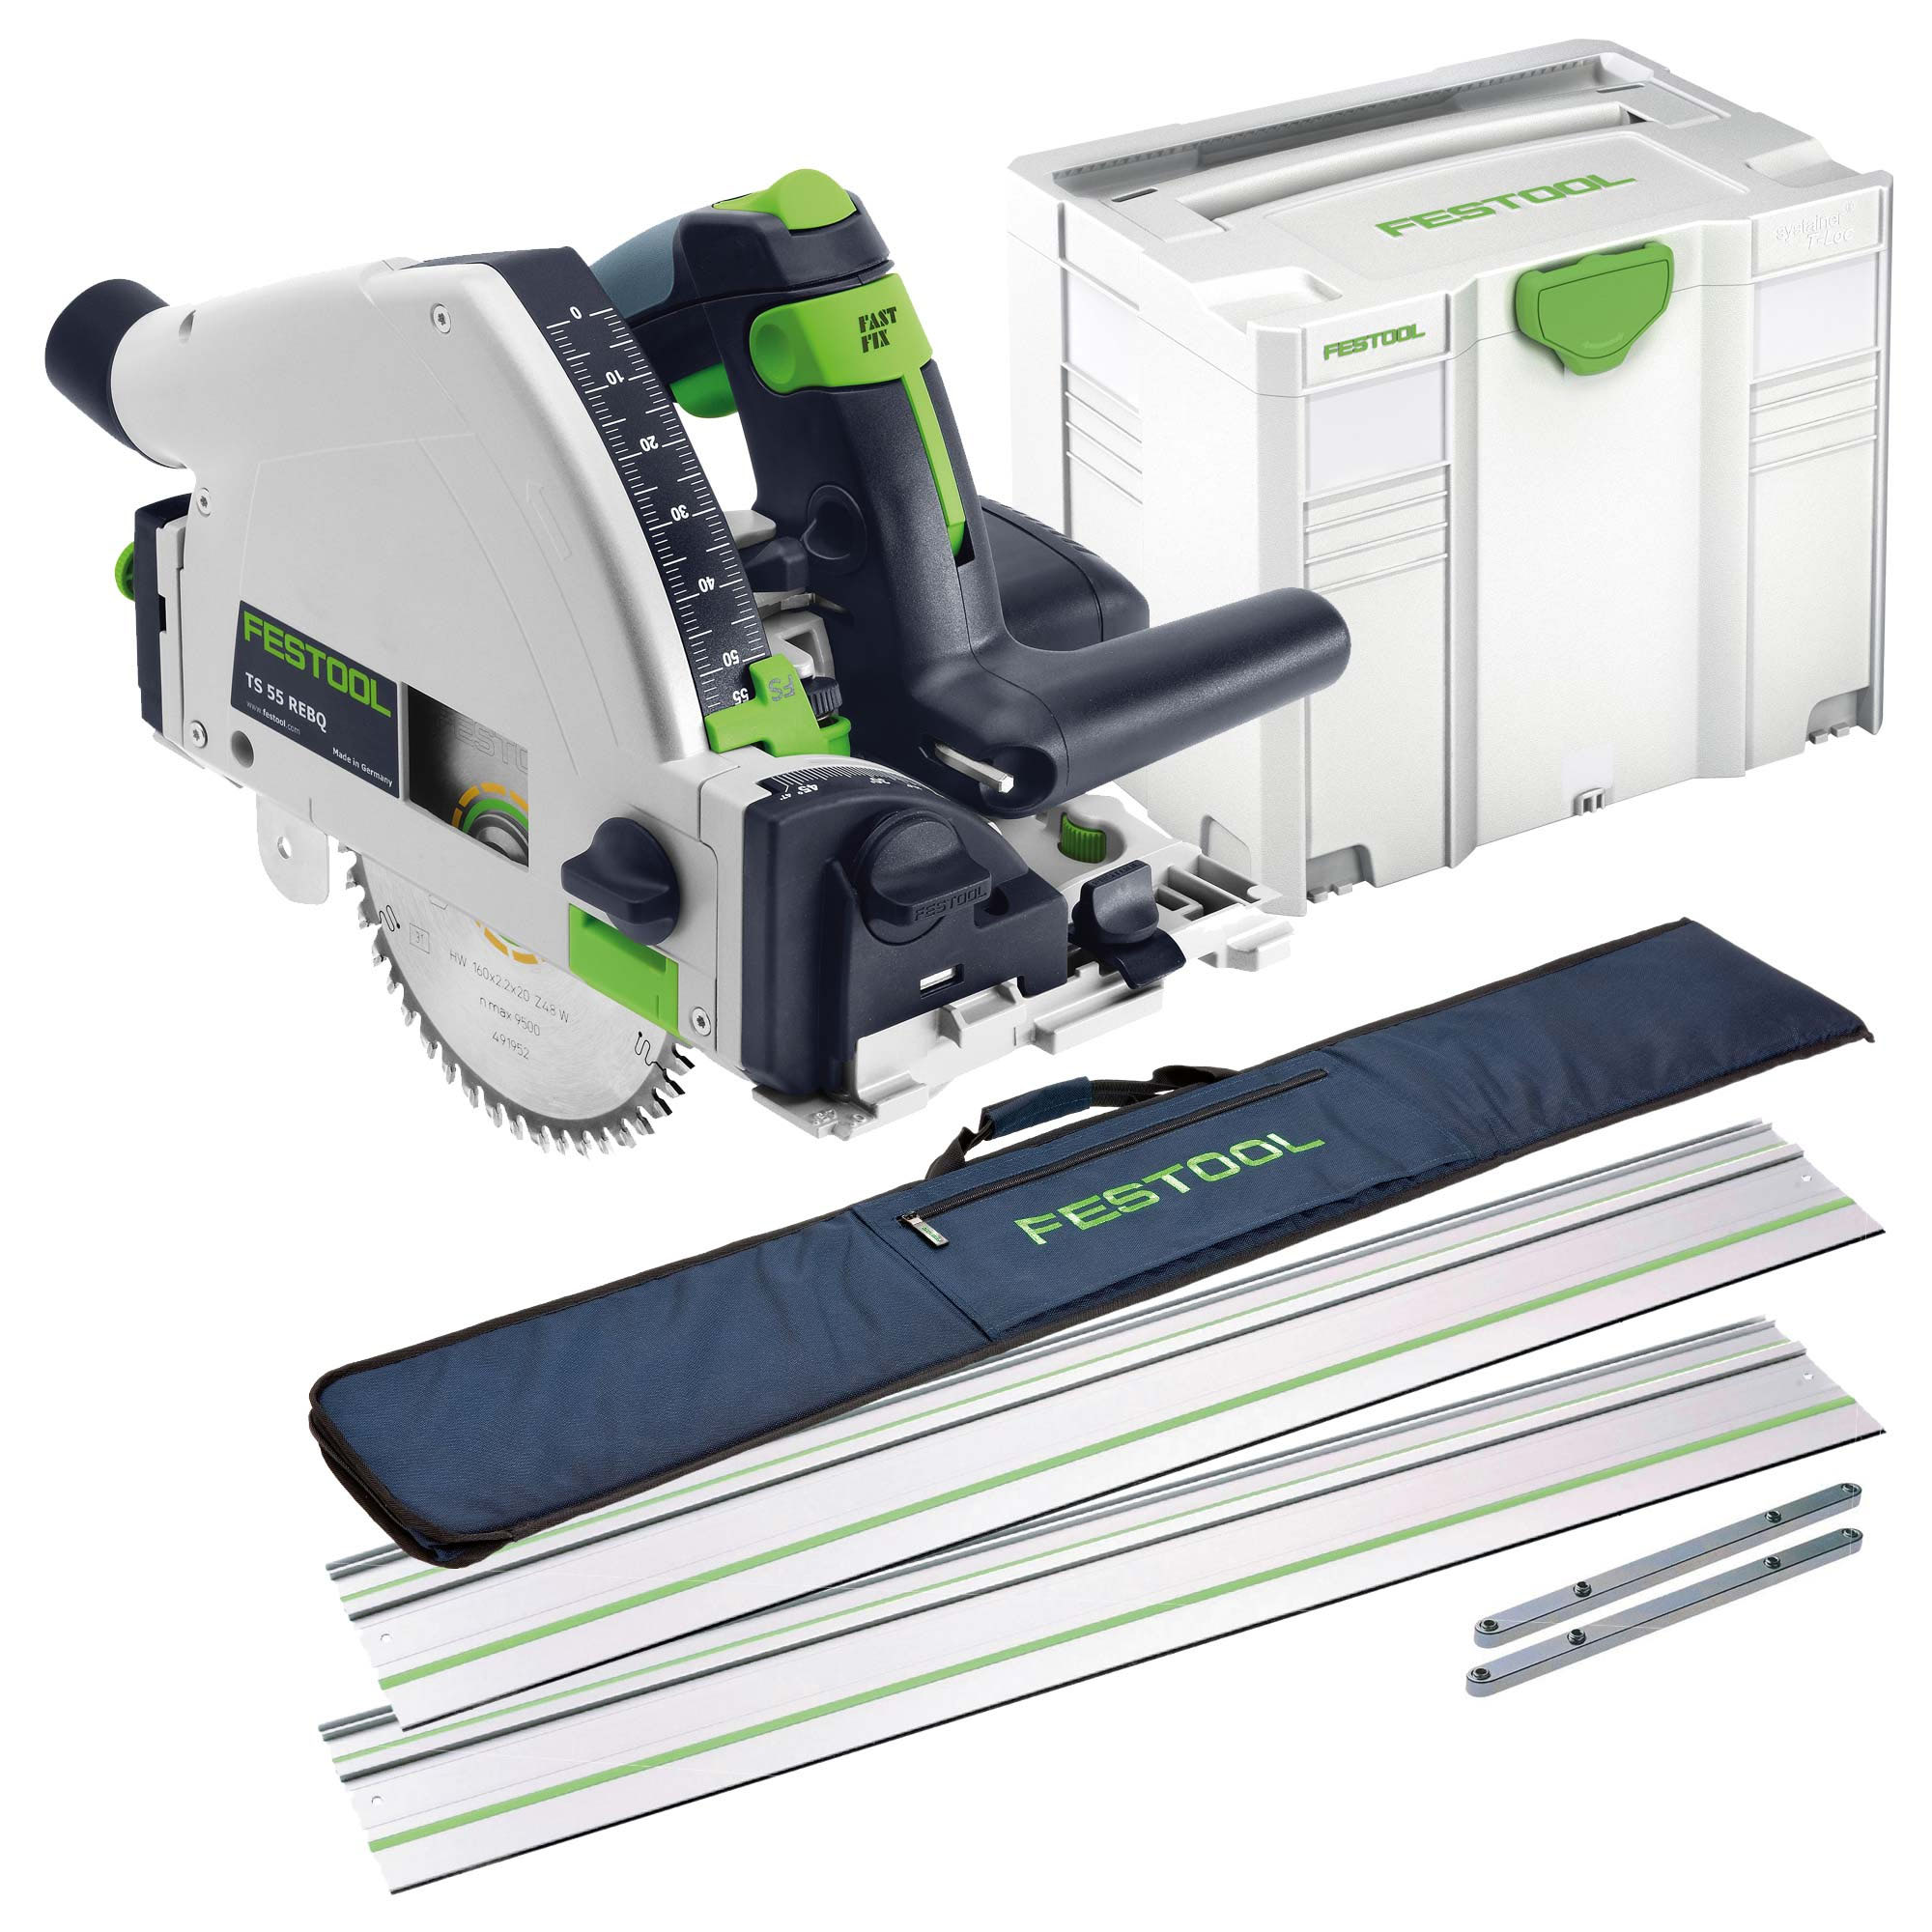 festool saw and guide combo